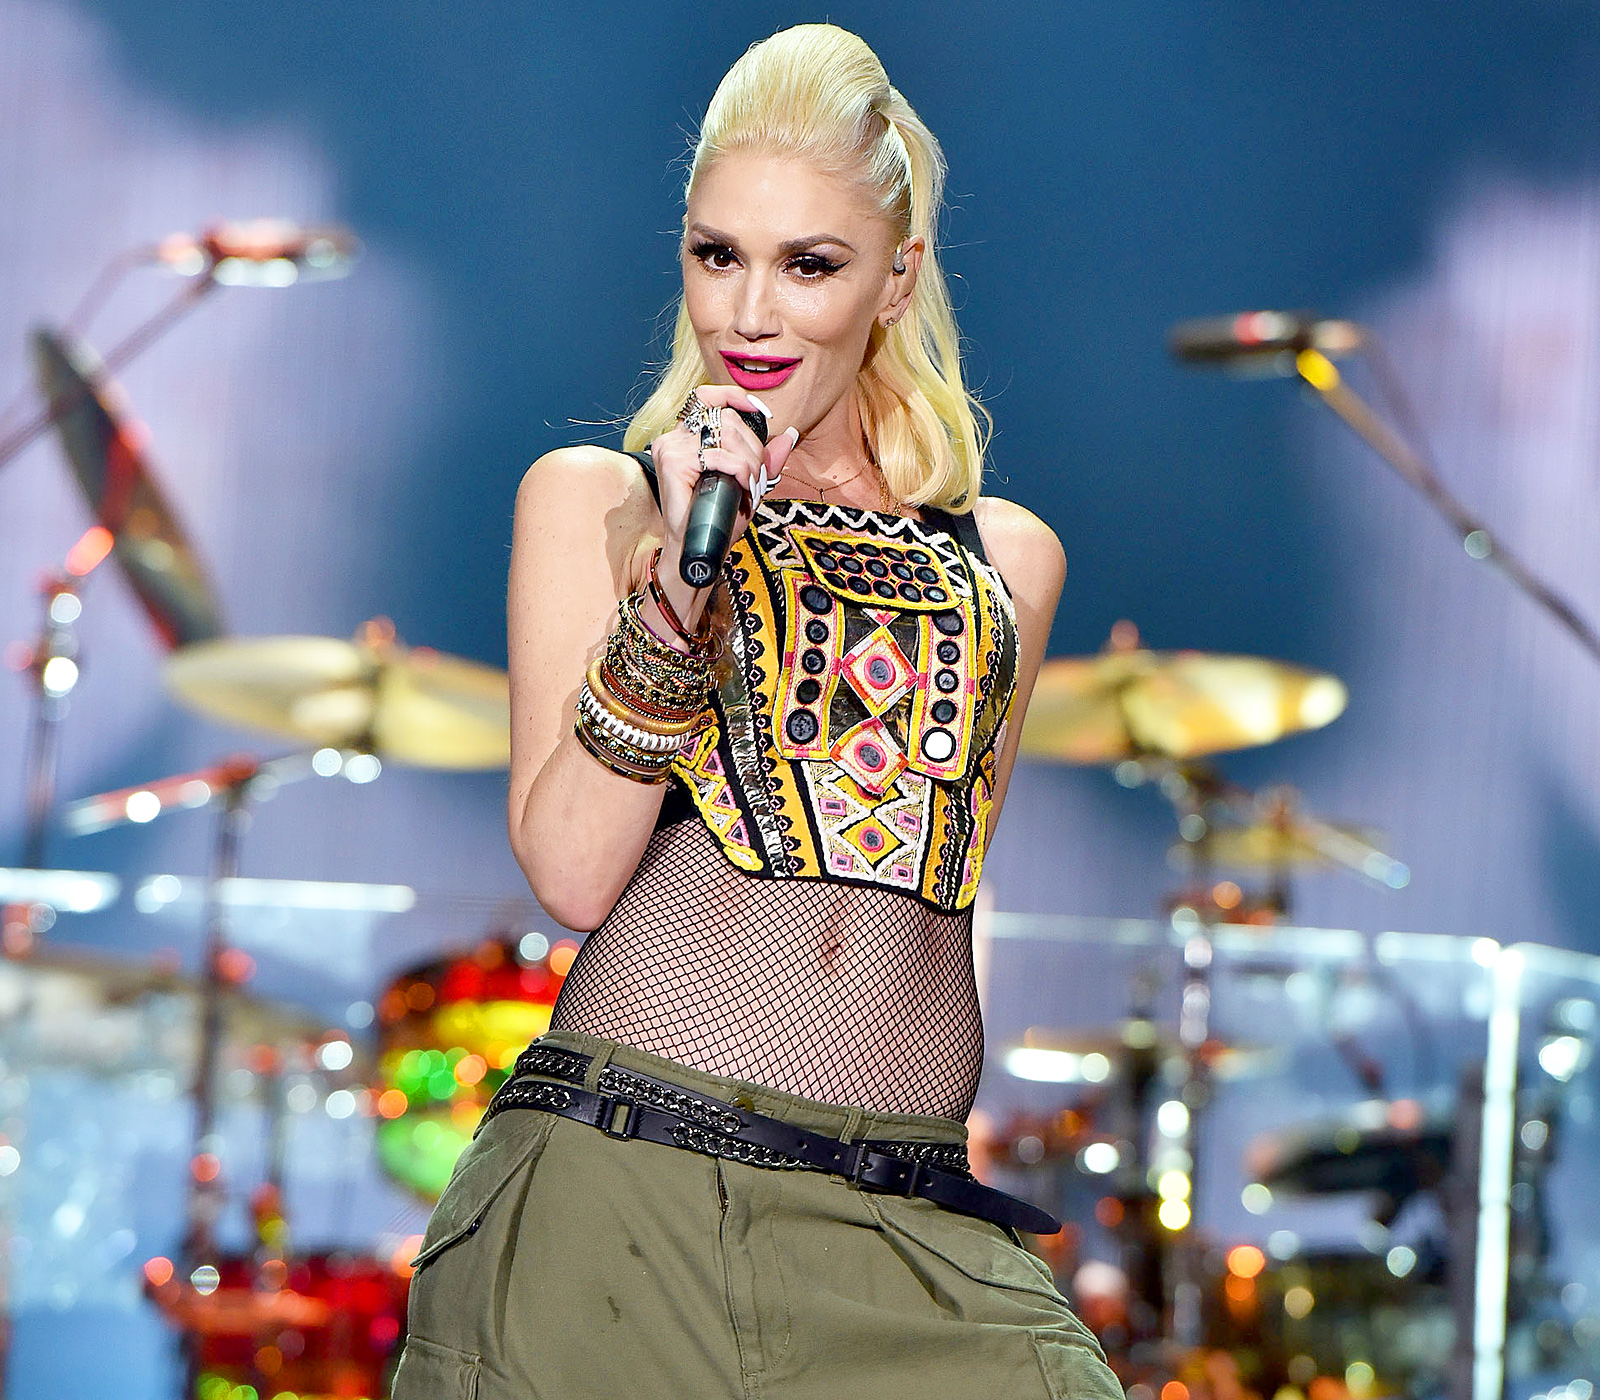 Gwen Stefani Reveals Dates for Las Vegas Residency